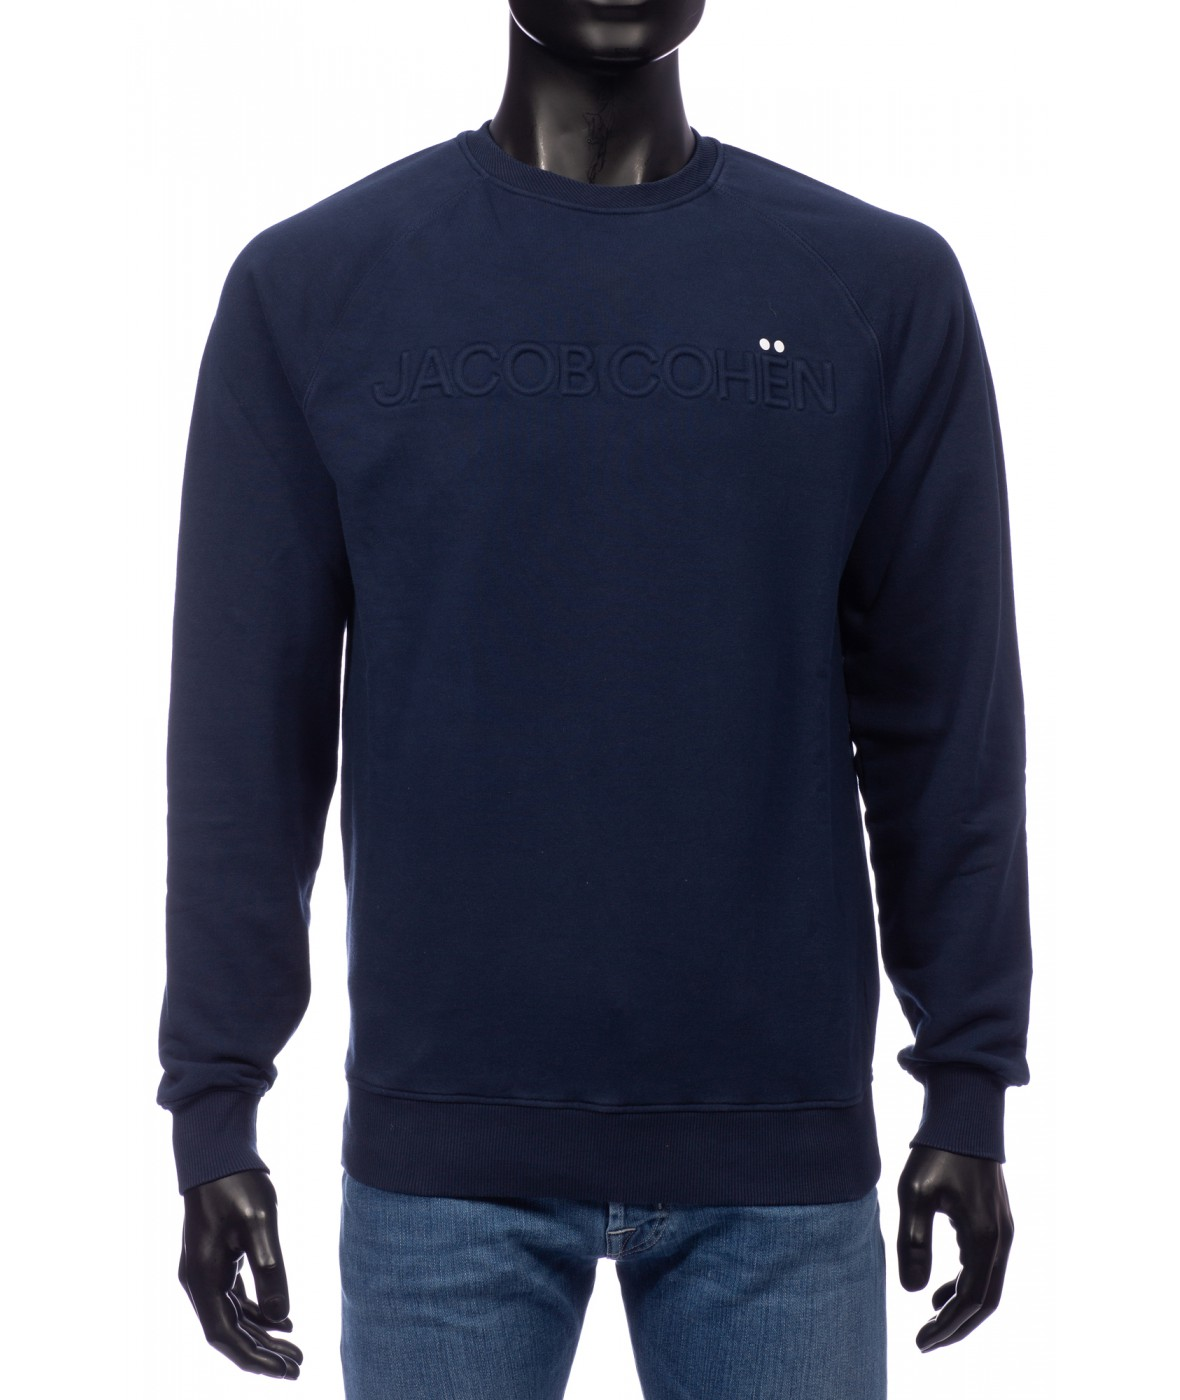 Jacob Cohen Sweater Blauw (30434)